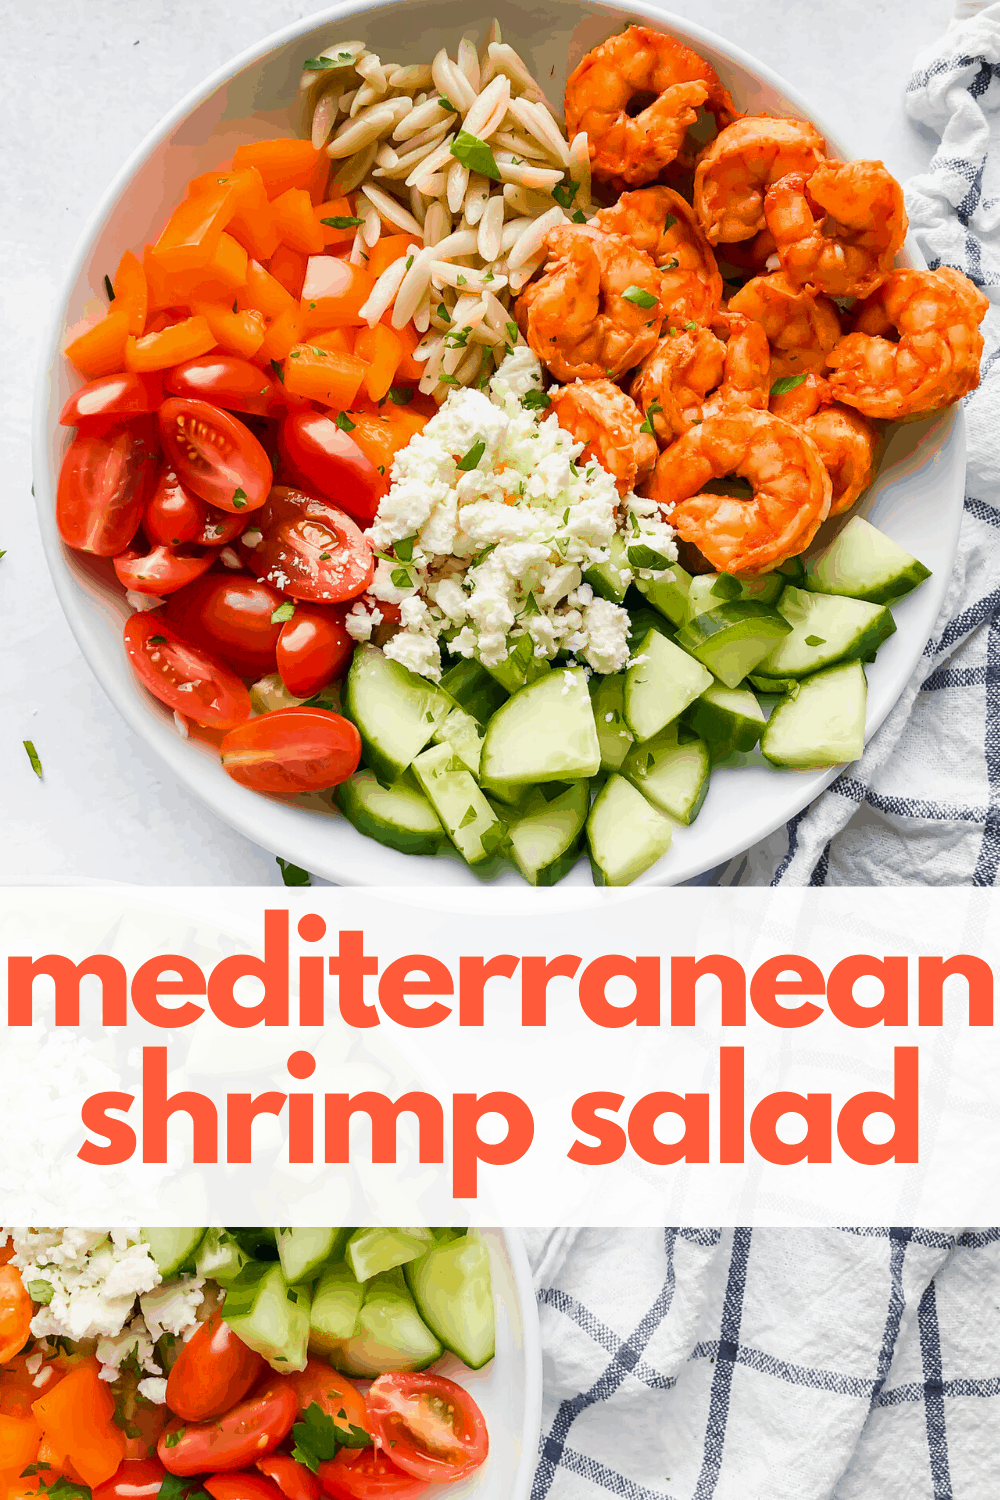 Mediterranean Shrimp Salad with text overlay